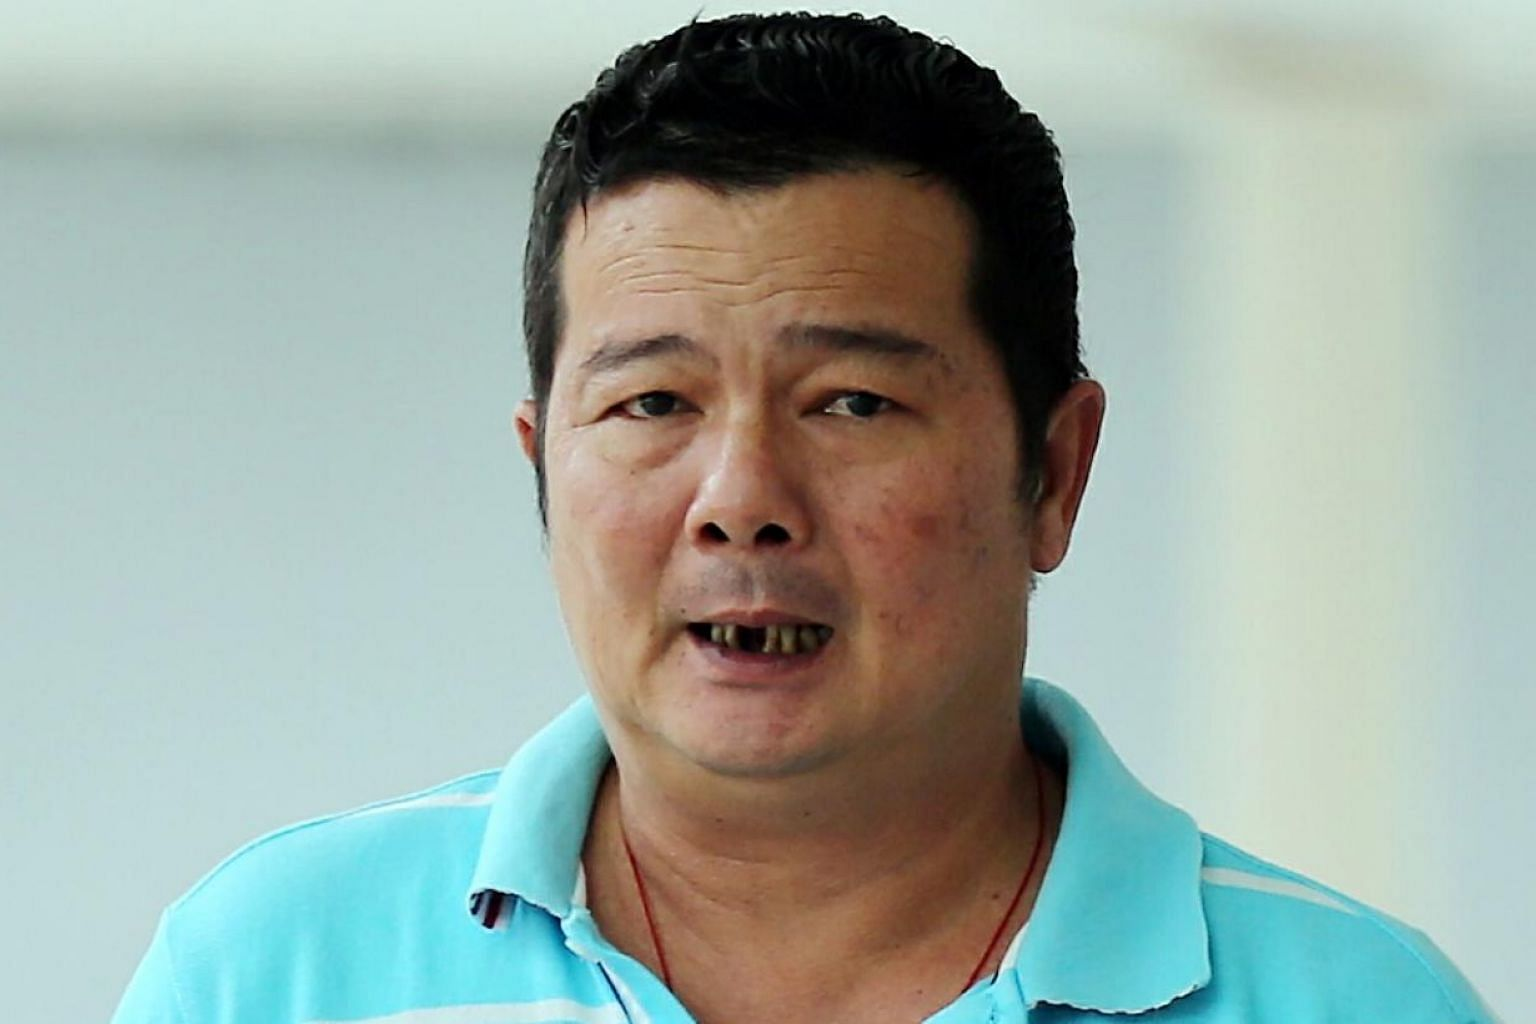 Lorry driverLim Kok Aunwas sentenced to four weeks in prison and fined $7,000 for failingto keep a safe distance from the prime mover or keeping a lookout for others on the road, contributing to the accident that killedmotorcy